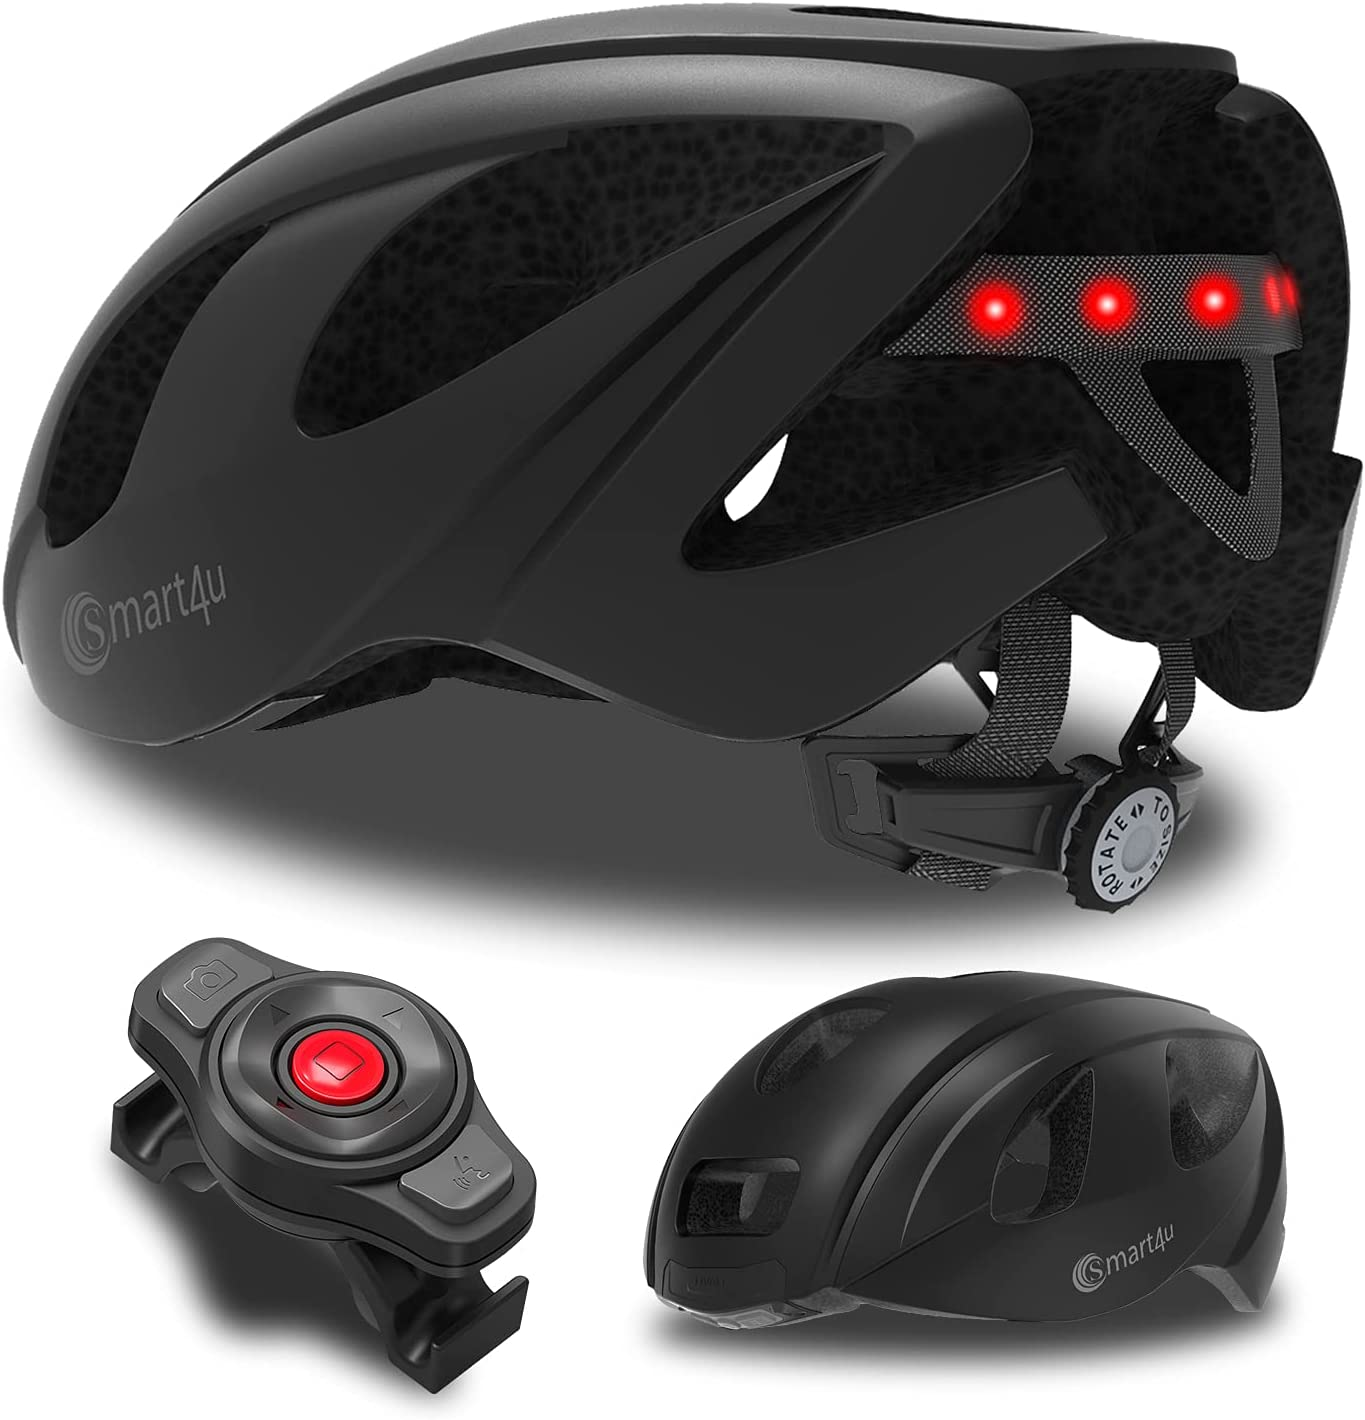 Smart4U SH55M Adult Bike Safety and trust Super popular specialty store Helmet with Rear LED Bicyc Smart Light